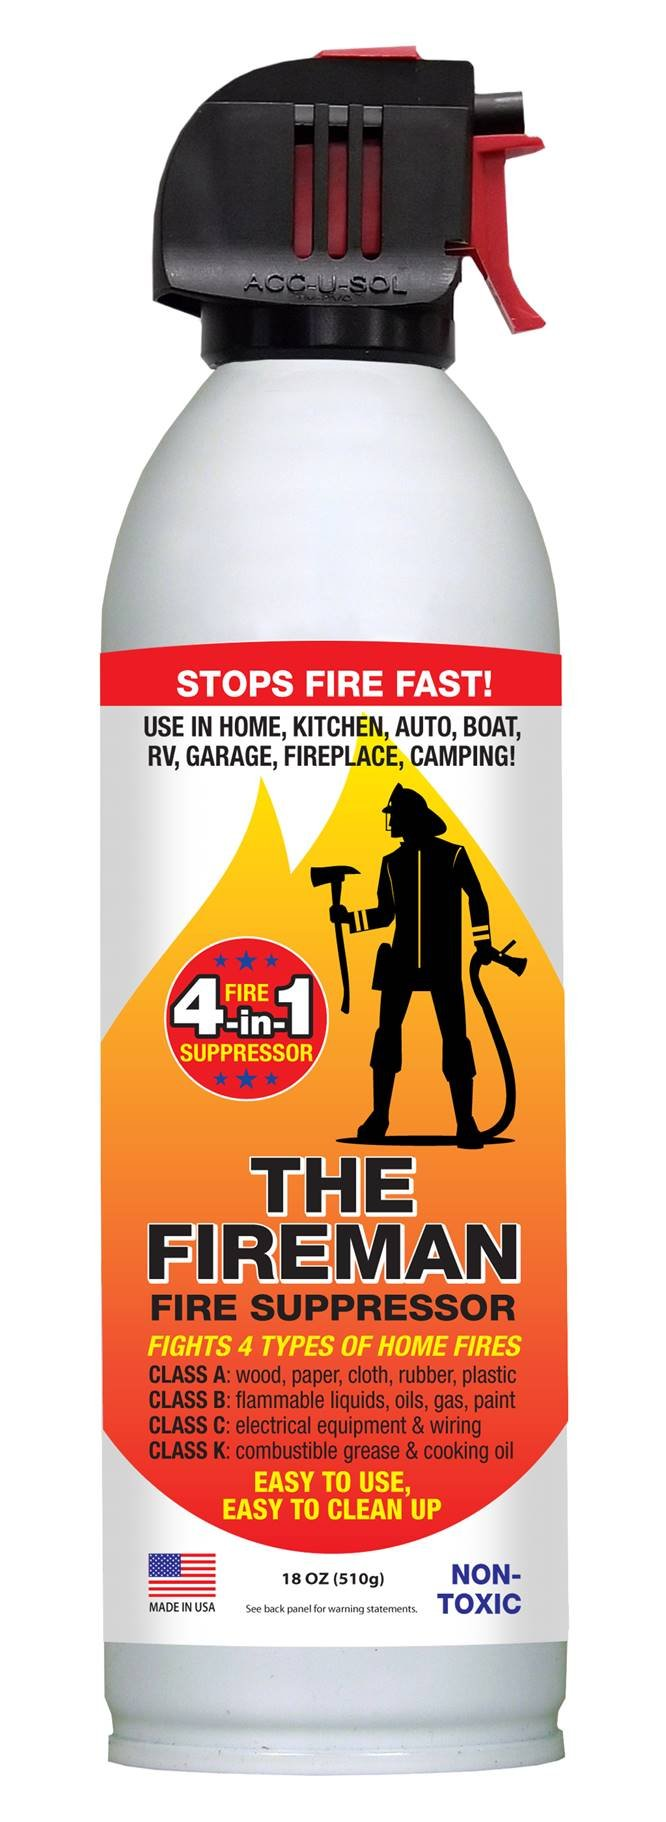 THE FIREMAN - UL APPROVED Multi-Purpose Fire Extinguishing Suppressant Spray - Fights ALL 4 Common Fires: Wood, Gasoline, Electrical Equipment and Grease/Fat Fires (Class A,B,C & K) - 18 oz. (1 Pack)